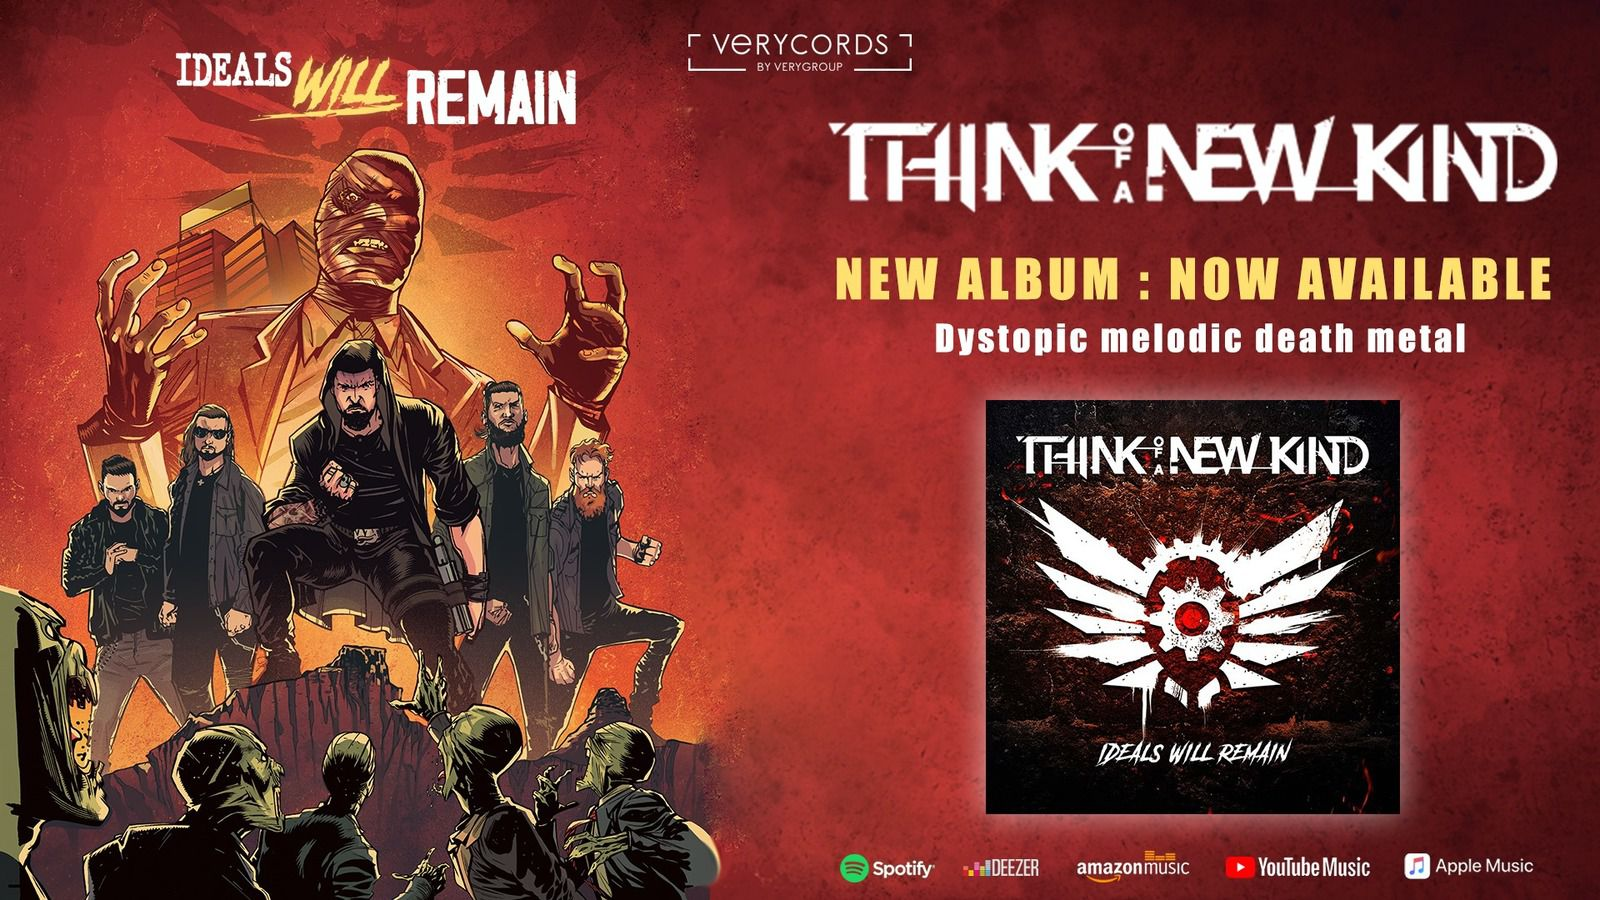 Le nouvel album de THINK OF A NEW KIND est déjà disponible !